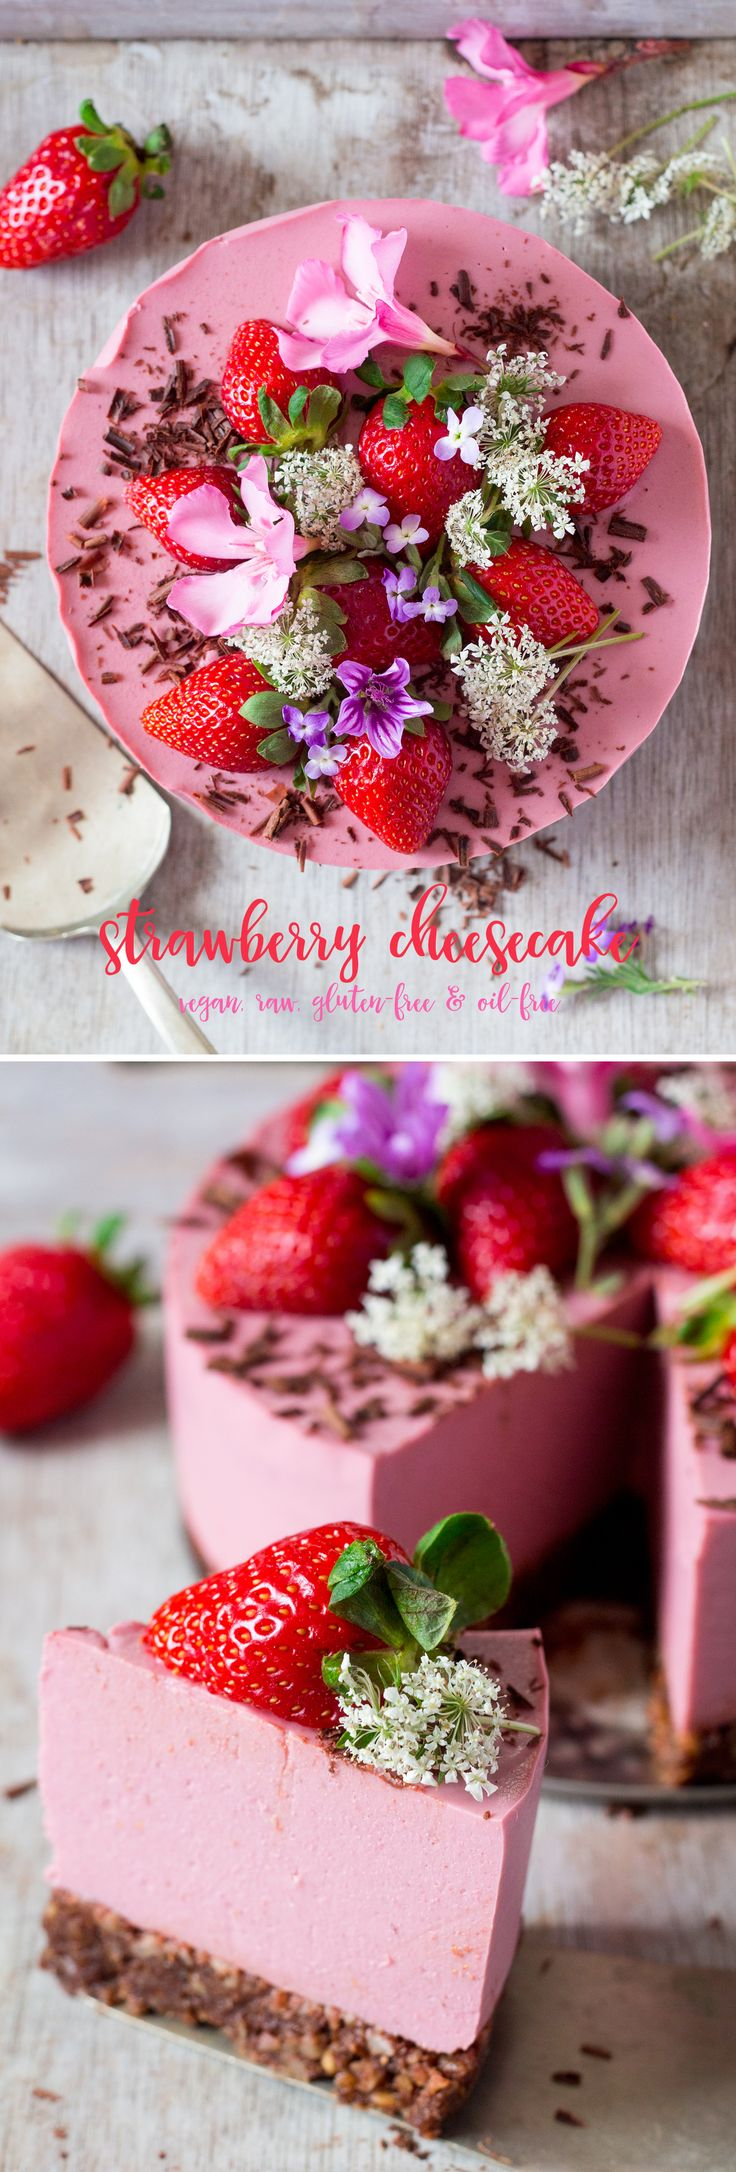 #strawberry #cheesecake that is #easy and quick to make and requires fewer than 10 ingredients. It's #light and #creamy yet #raw #vegan #glutenfree and #oilfree too. #dessert #cake #recipe #recipes #vegetarian #aquafaba #agar